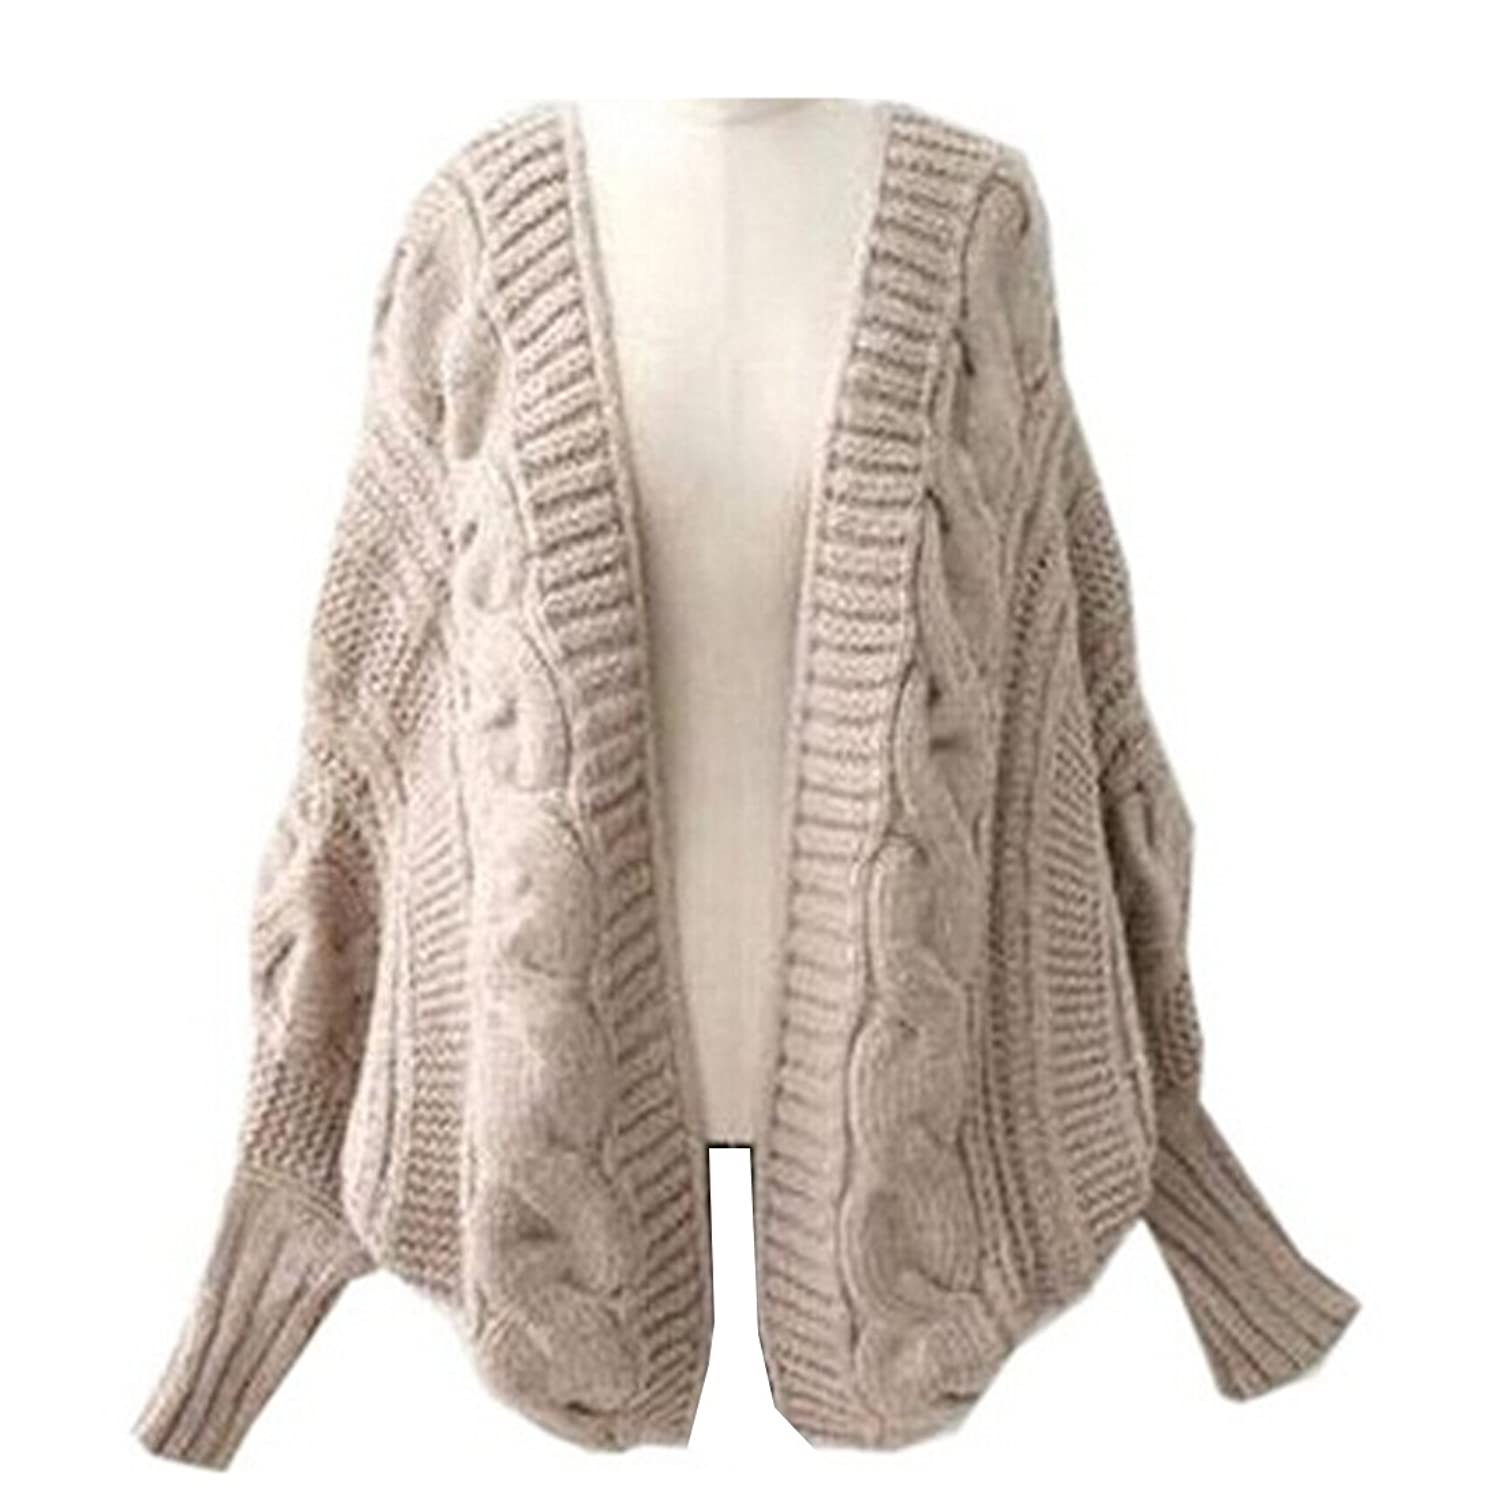 Amazon.com: Partiss Women Batwing Cable-knit Plus Size Cardigan ...